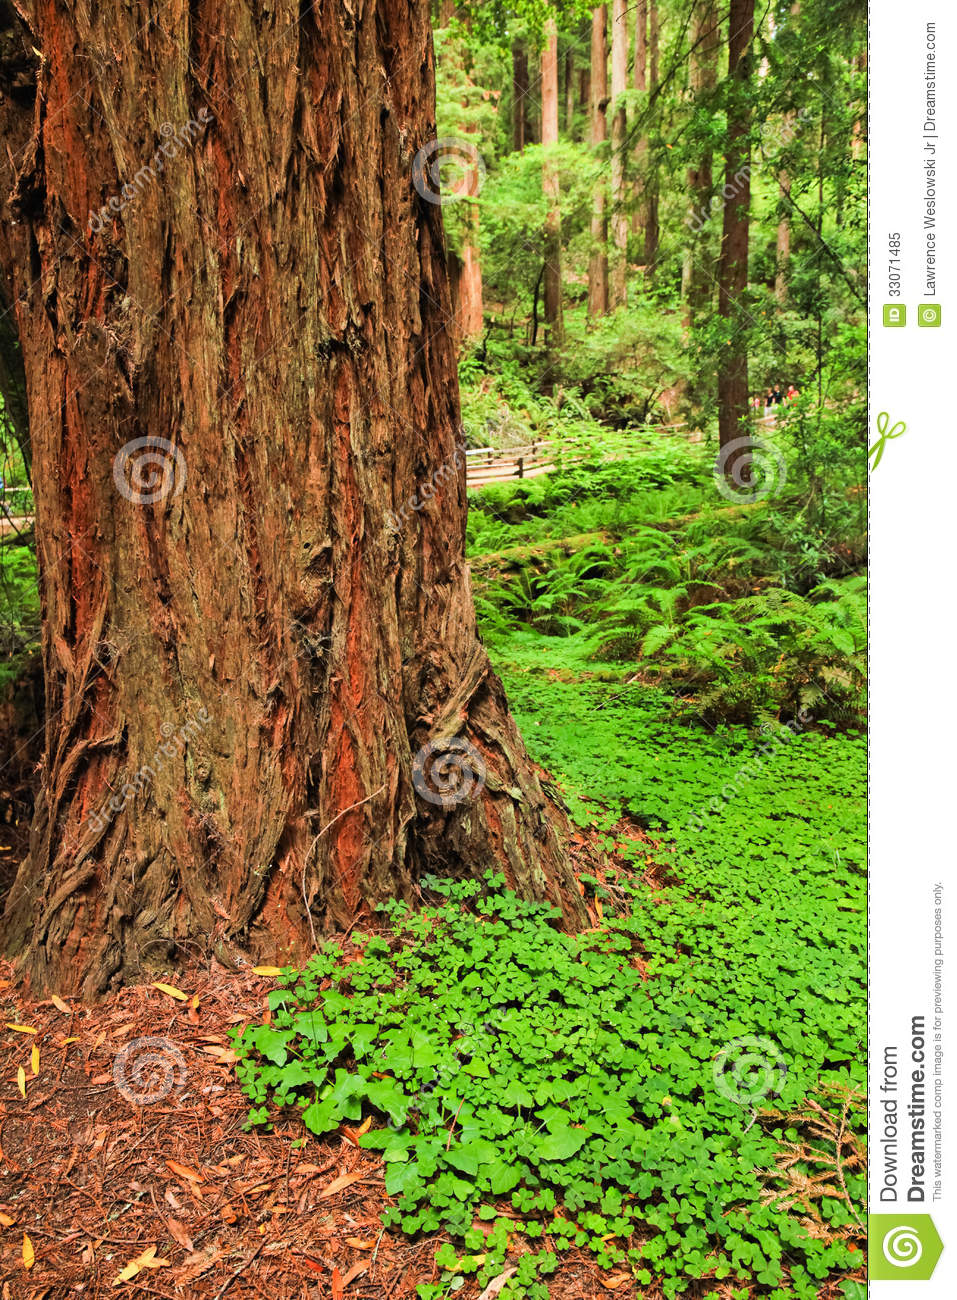 Muir woods redwood tree trunk royalty free stock photo image 33071485 - Flowers that grow on tree trunks ...